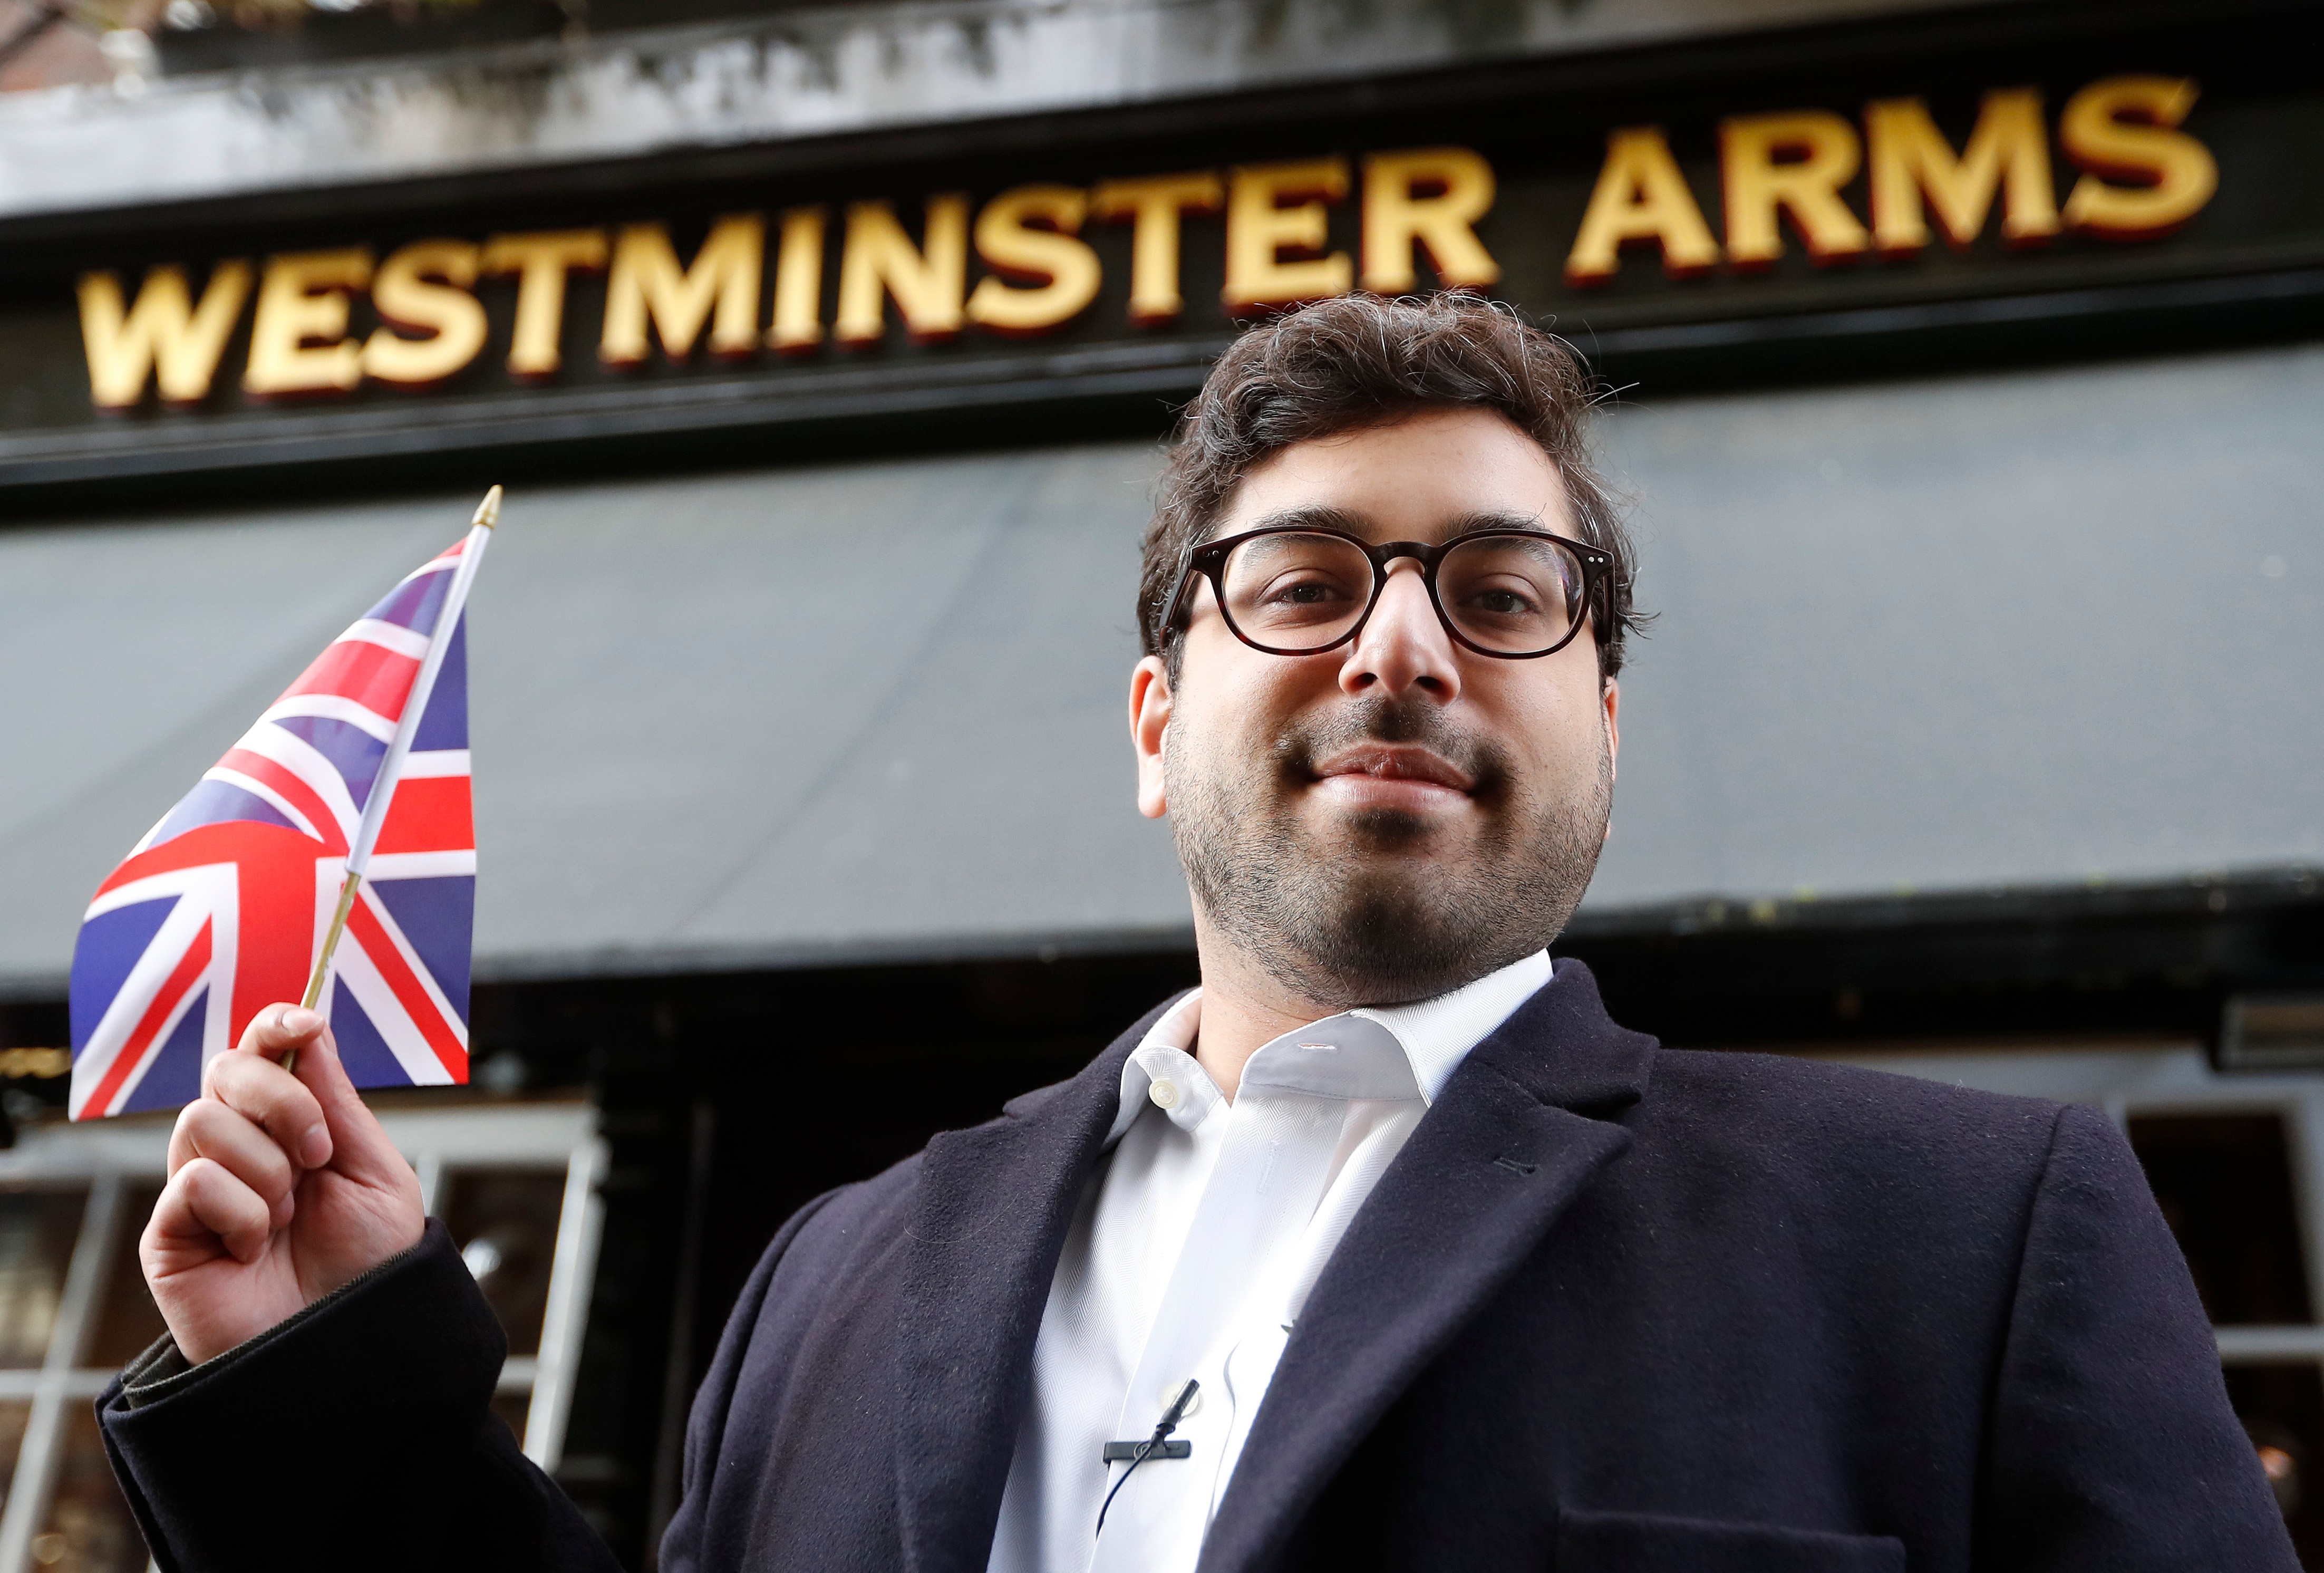 Raheem Kassam is known for making controversial statements on Islam and immigration, among other things.